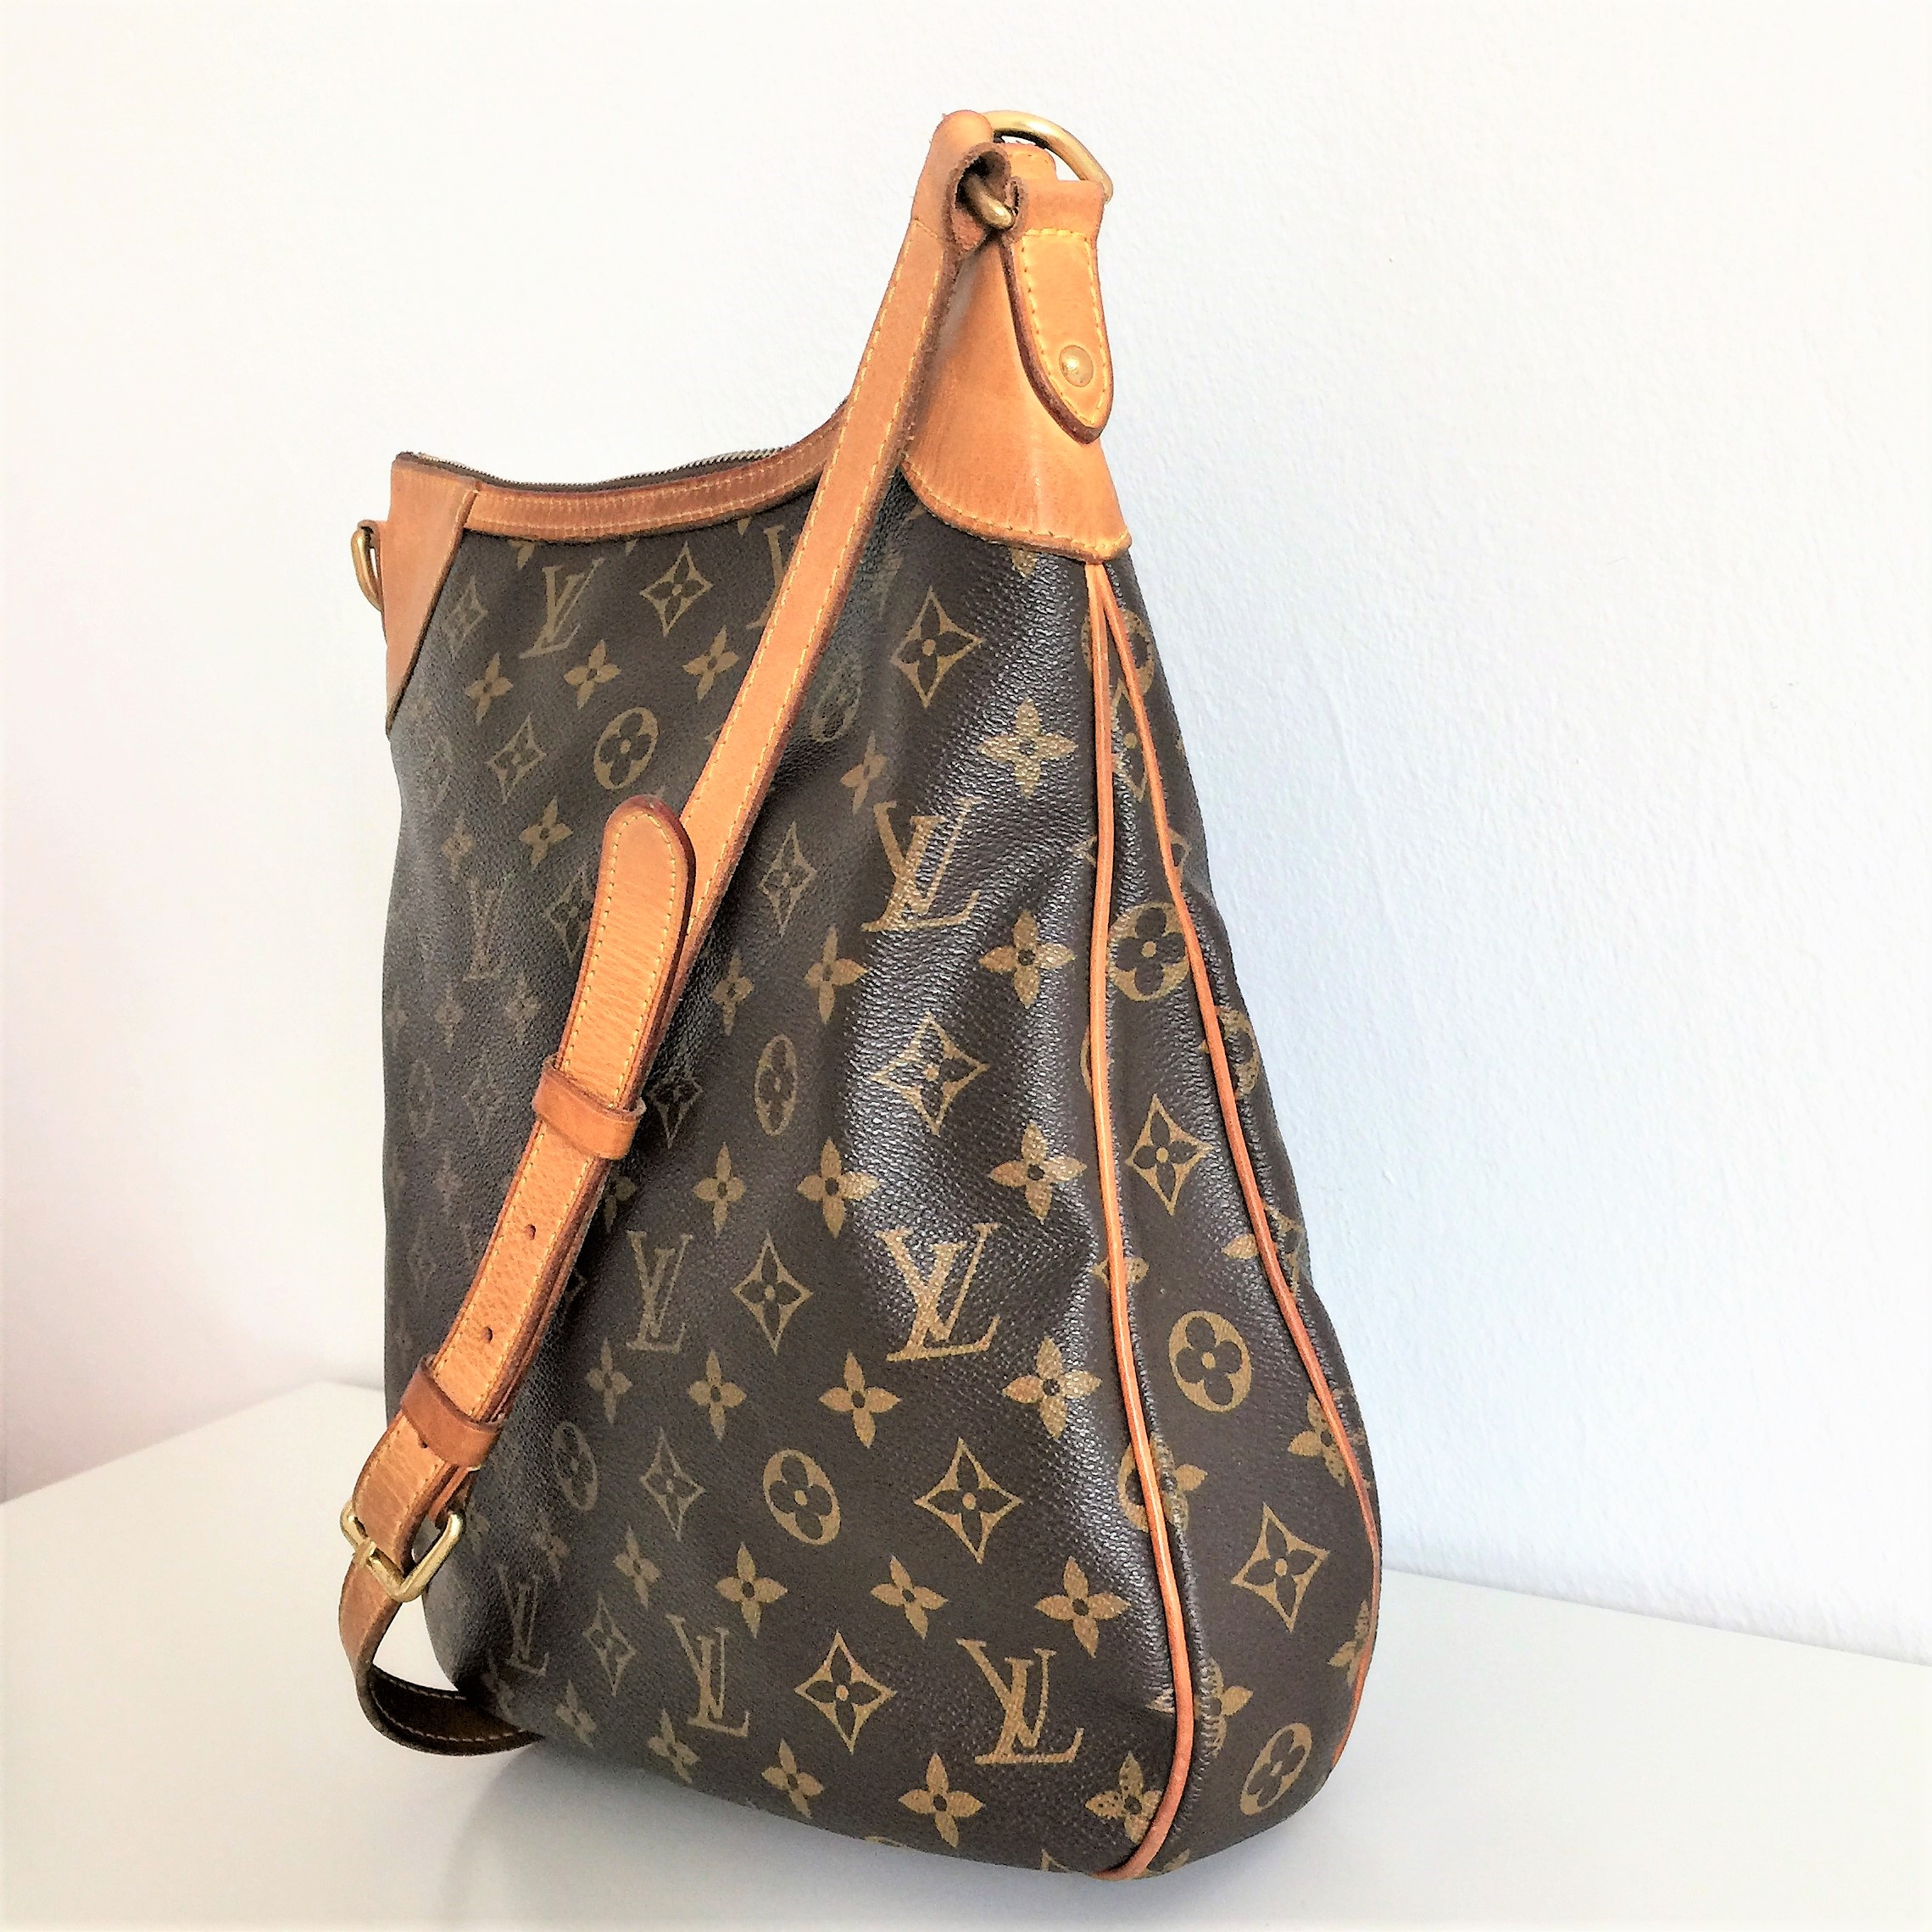 Borsa louis vuitton odeon mm monogram borsa di seconda for Borse usate firmate